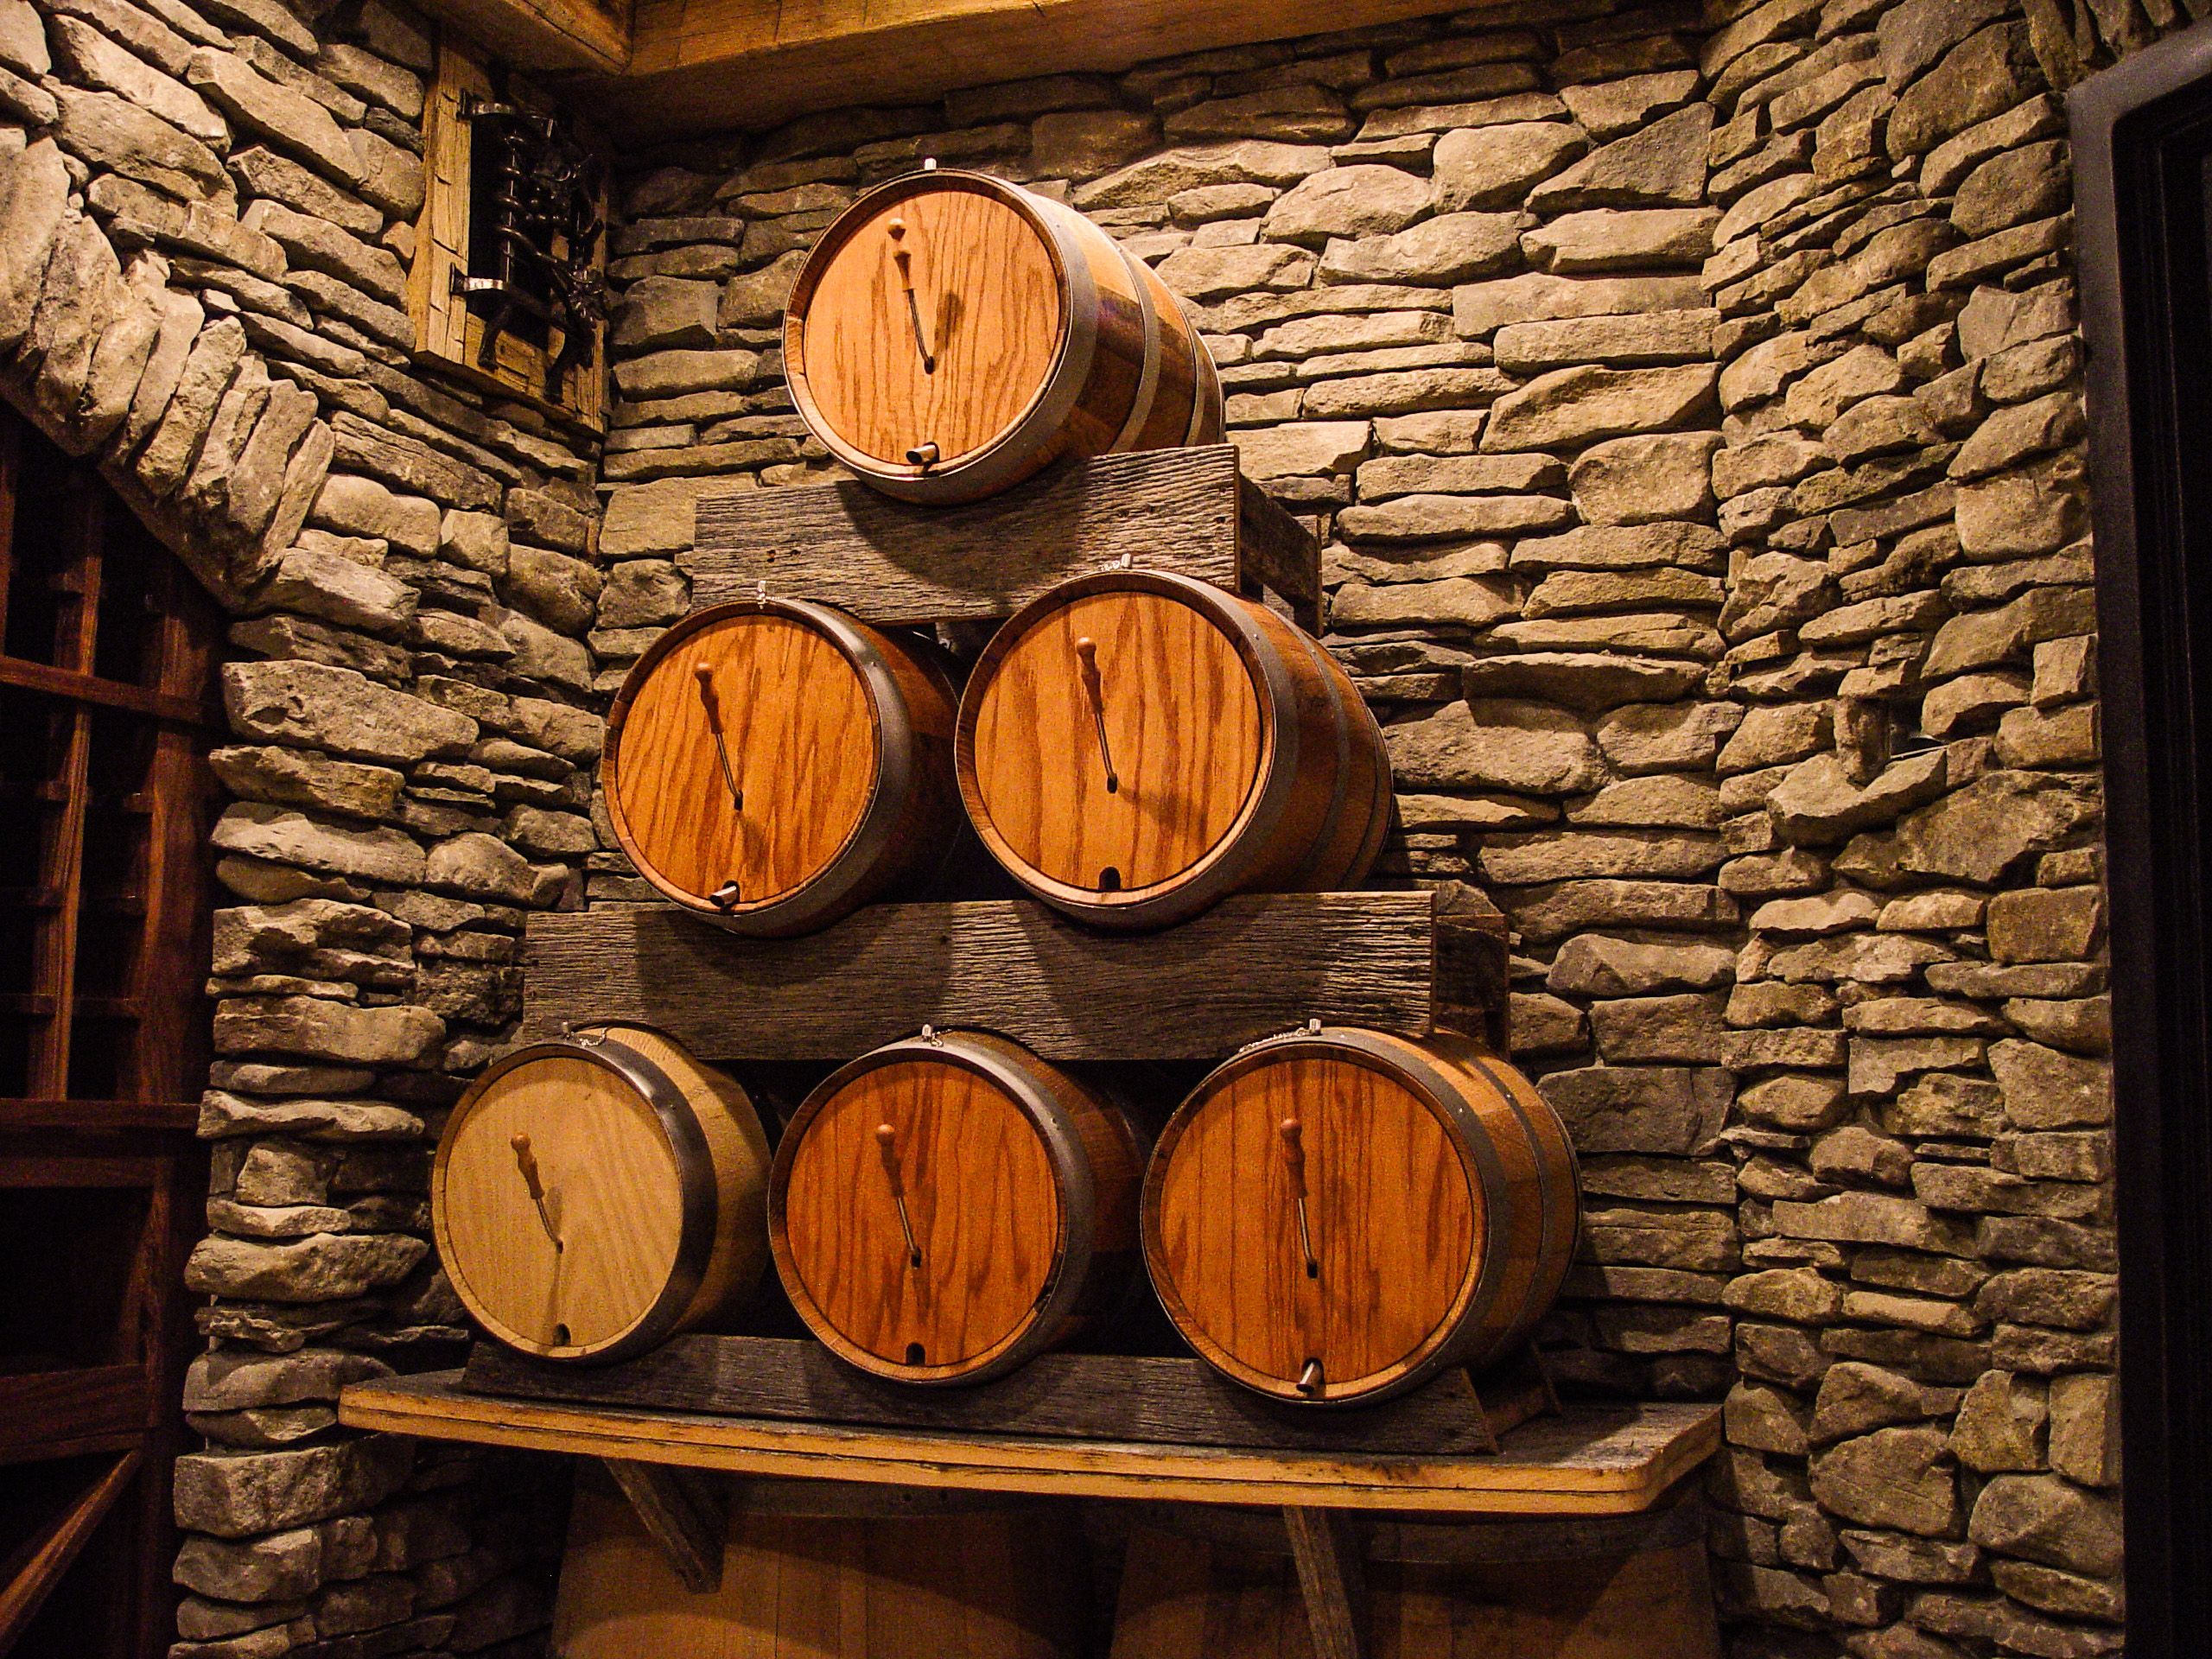 Century old wood, loads of stone, and mini-barrels galore! Cellar by Ron Porter at CellarMaker